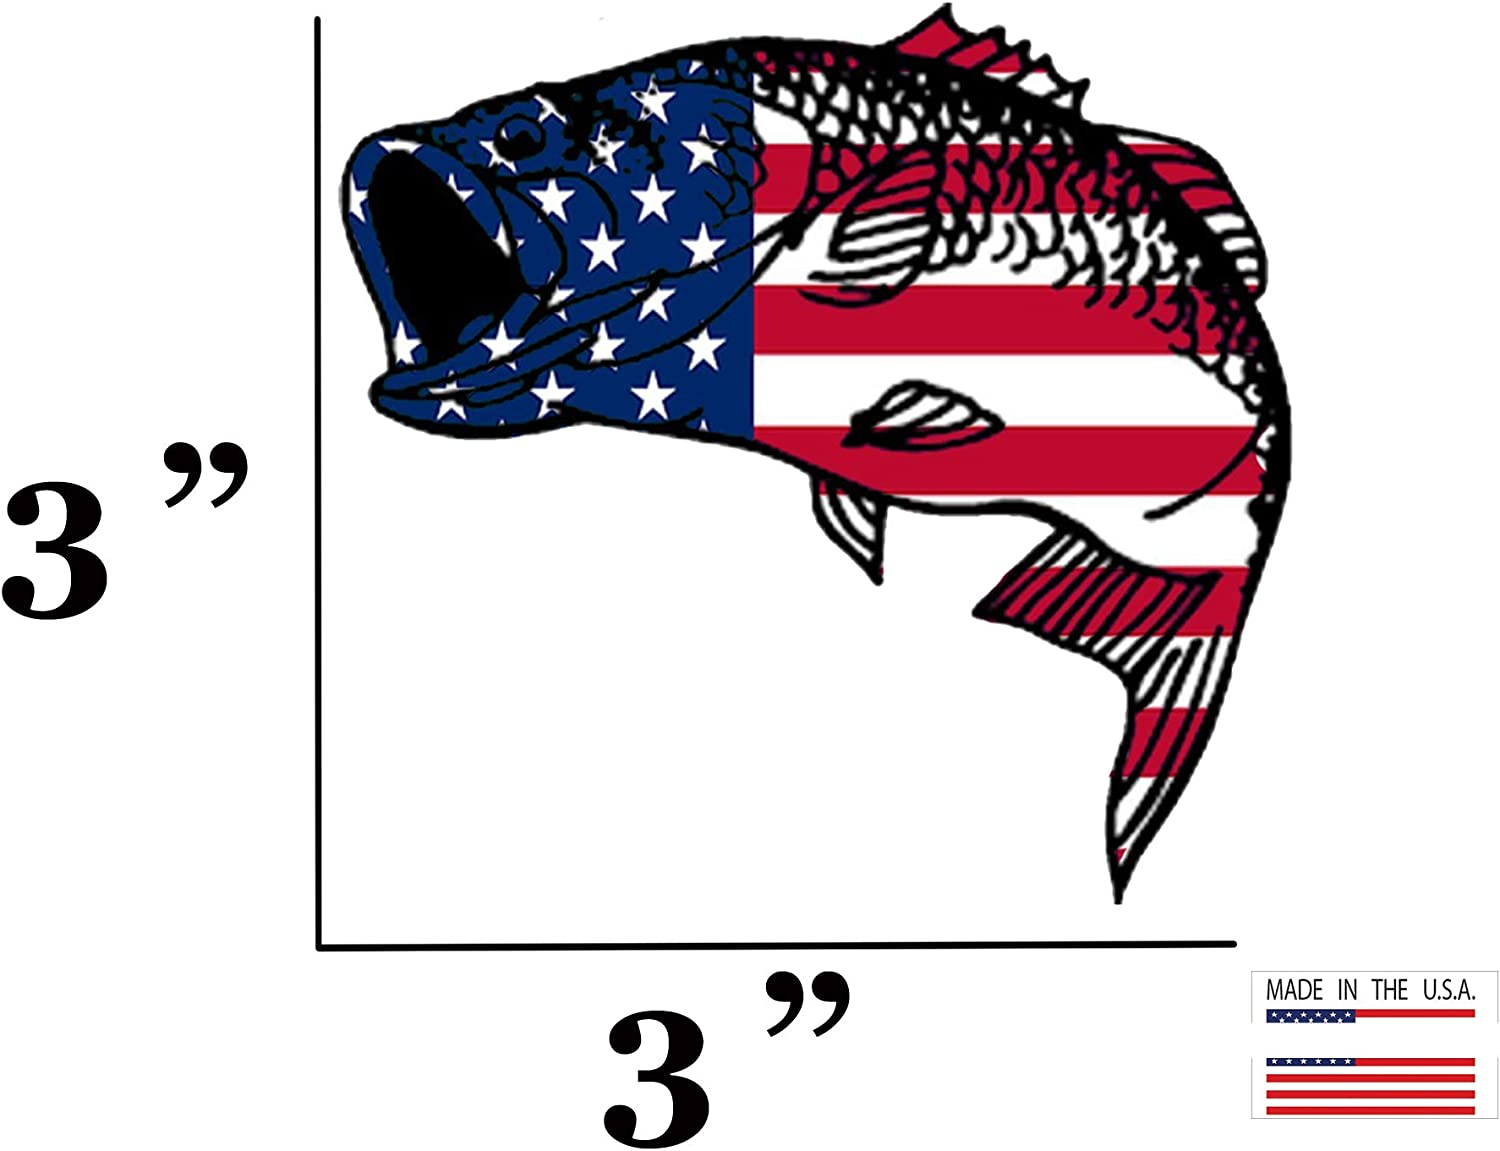 Star 5x5 Rogue River Tactical Pack of 4 Texas Car Decal Bumper Sticker Vinyl Flag Lone Star State Outline Car Truck Window RV Boat State